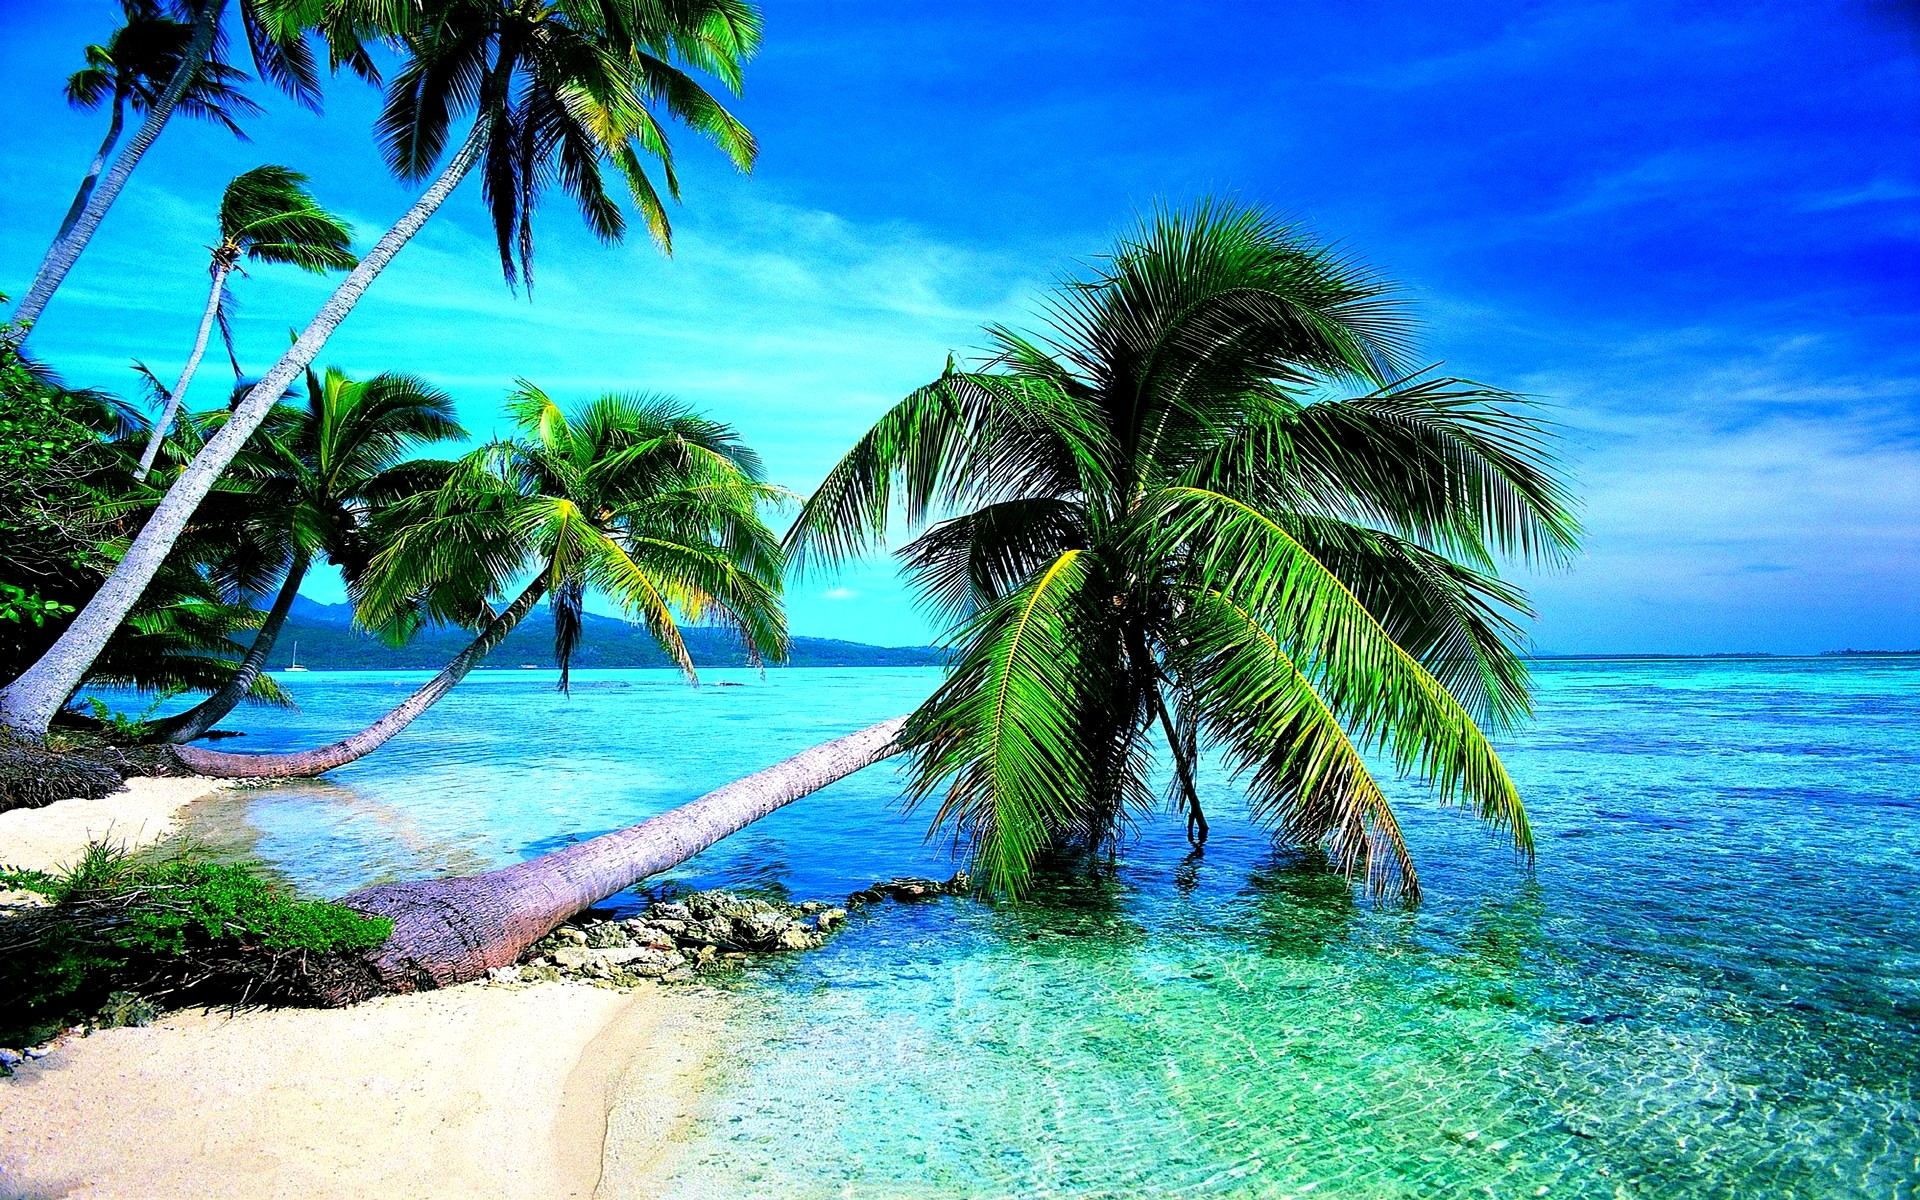 46 Beach Wallpapers 1 Download Free Stunning Full HD Backgrounds